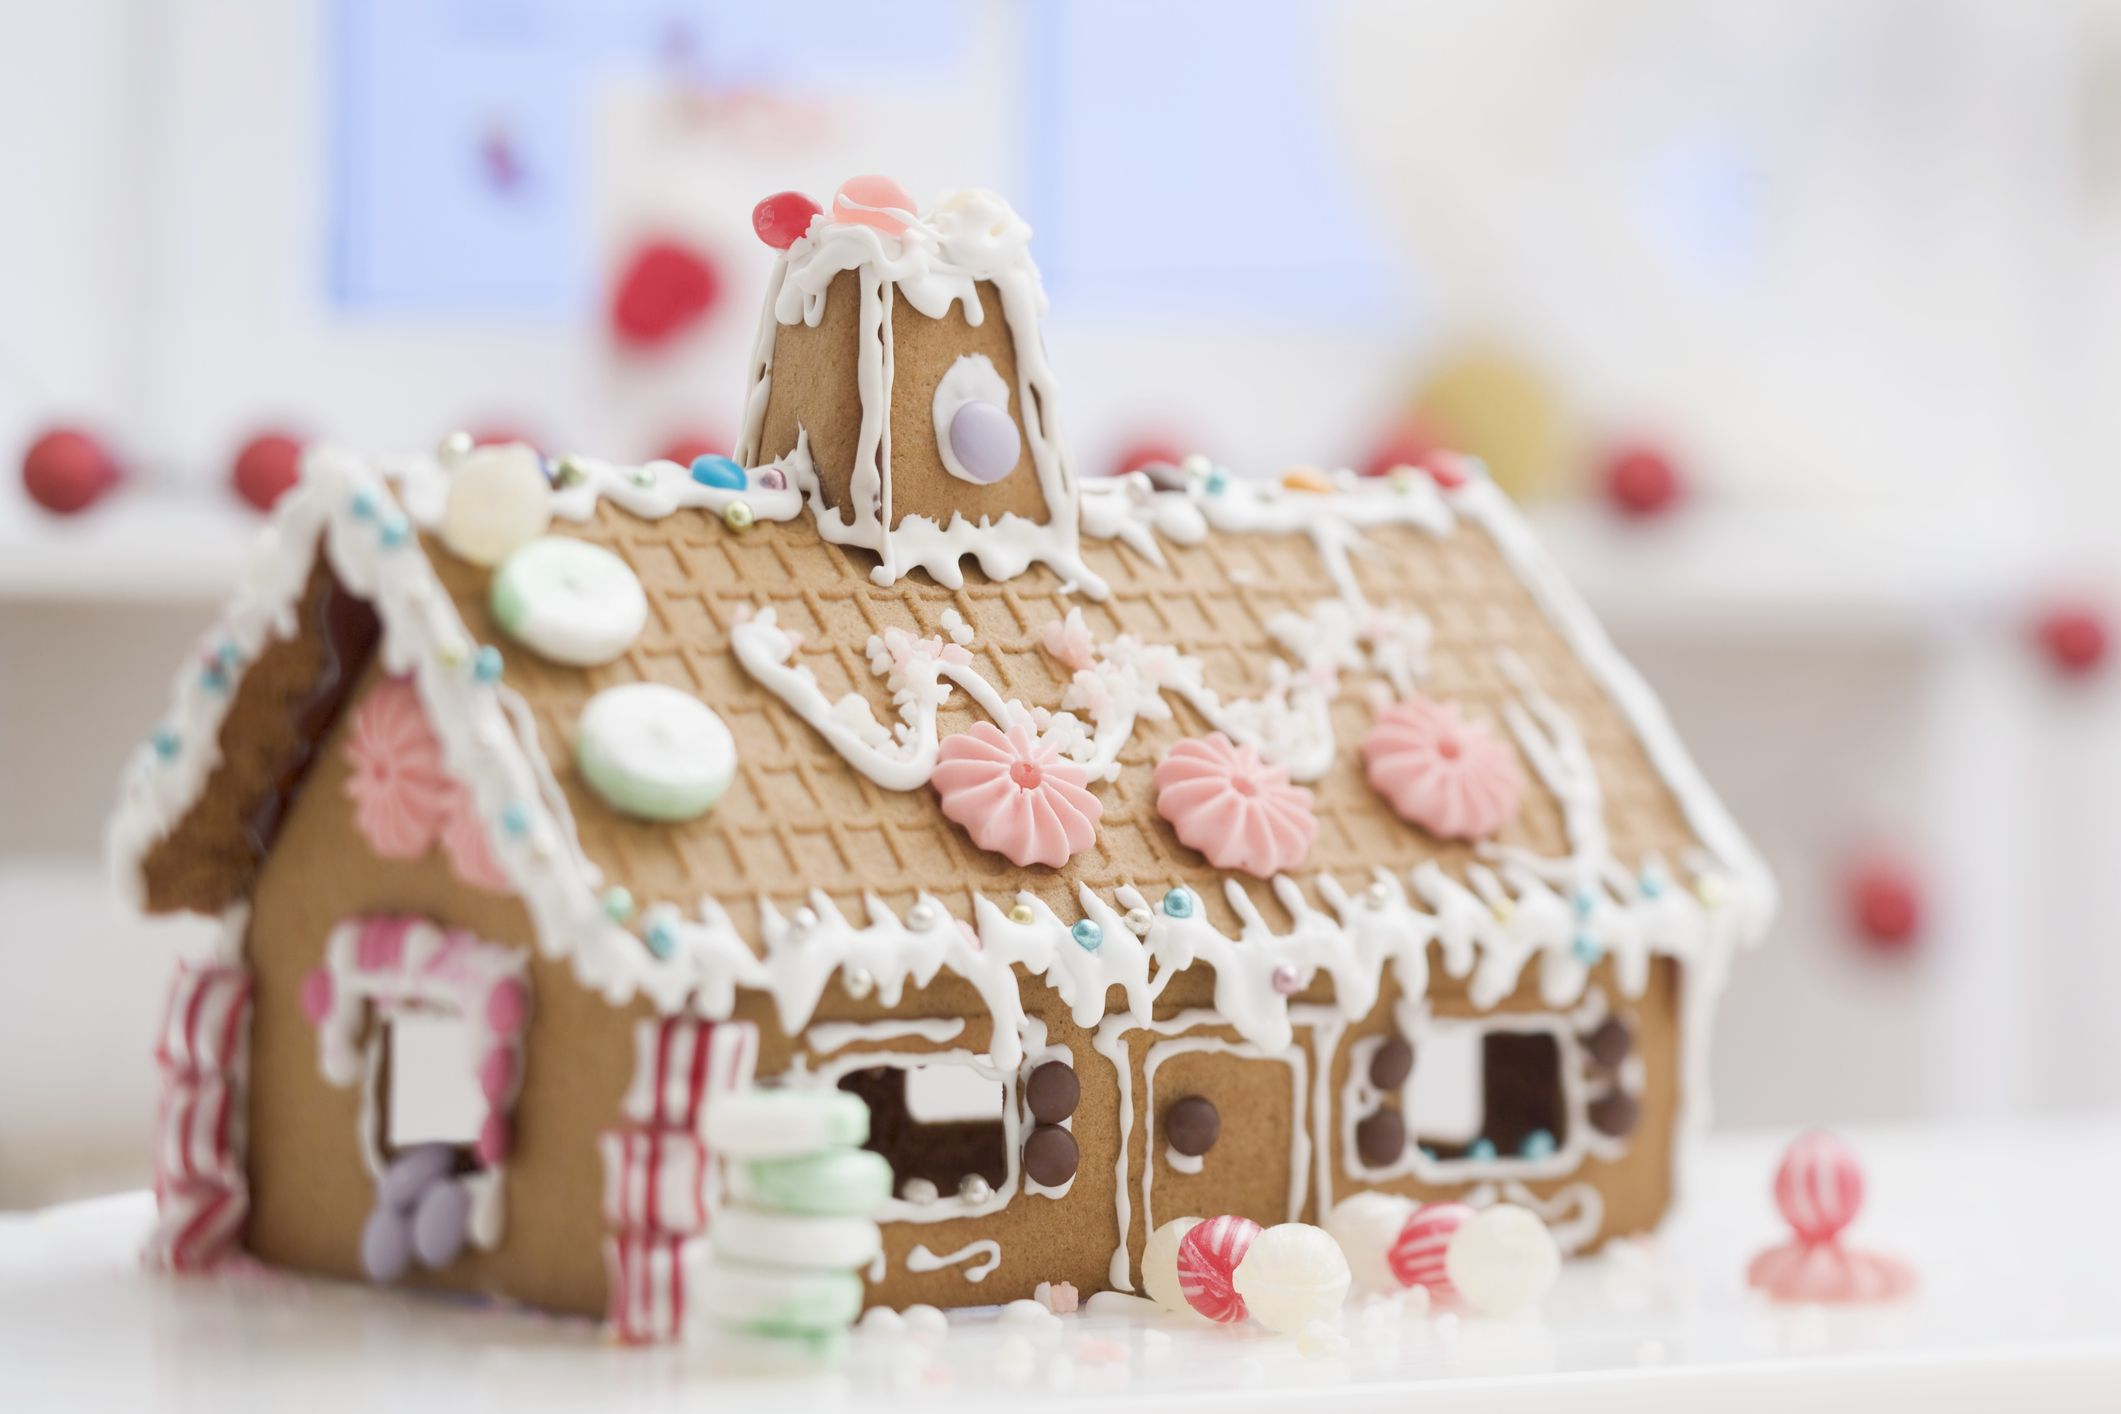 How to make and assemble a gingerbread house from scratch for How do you make a gingerbread house